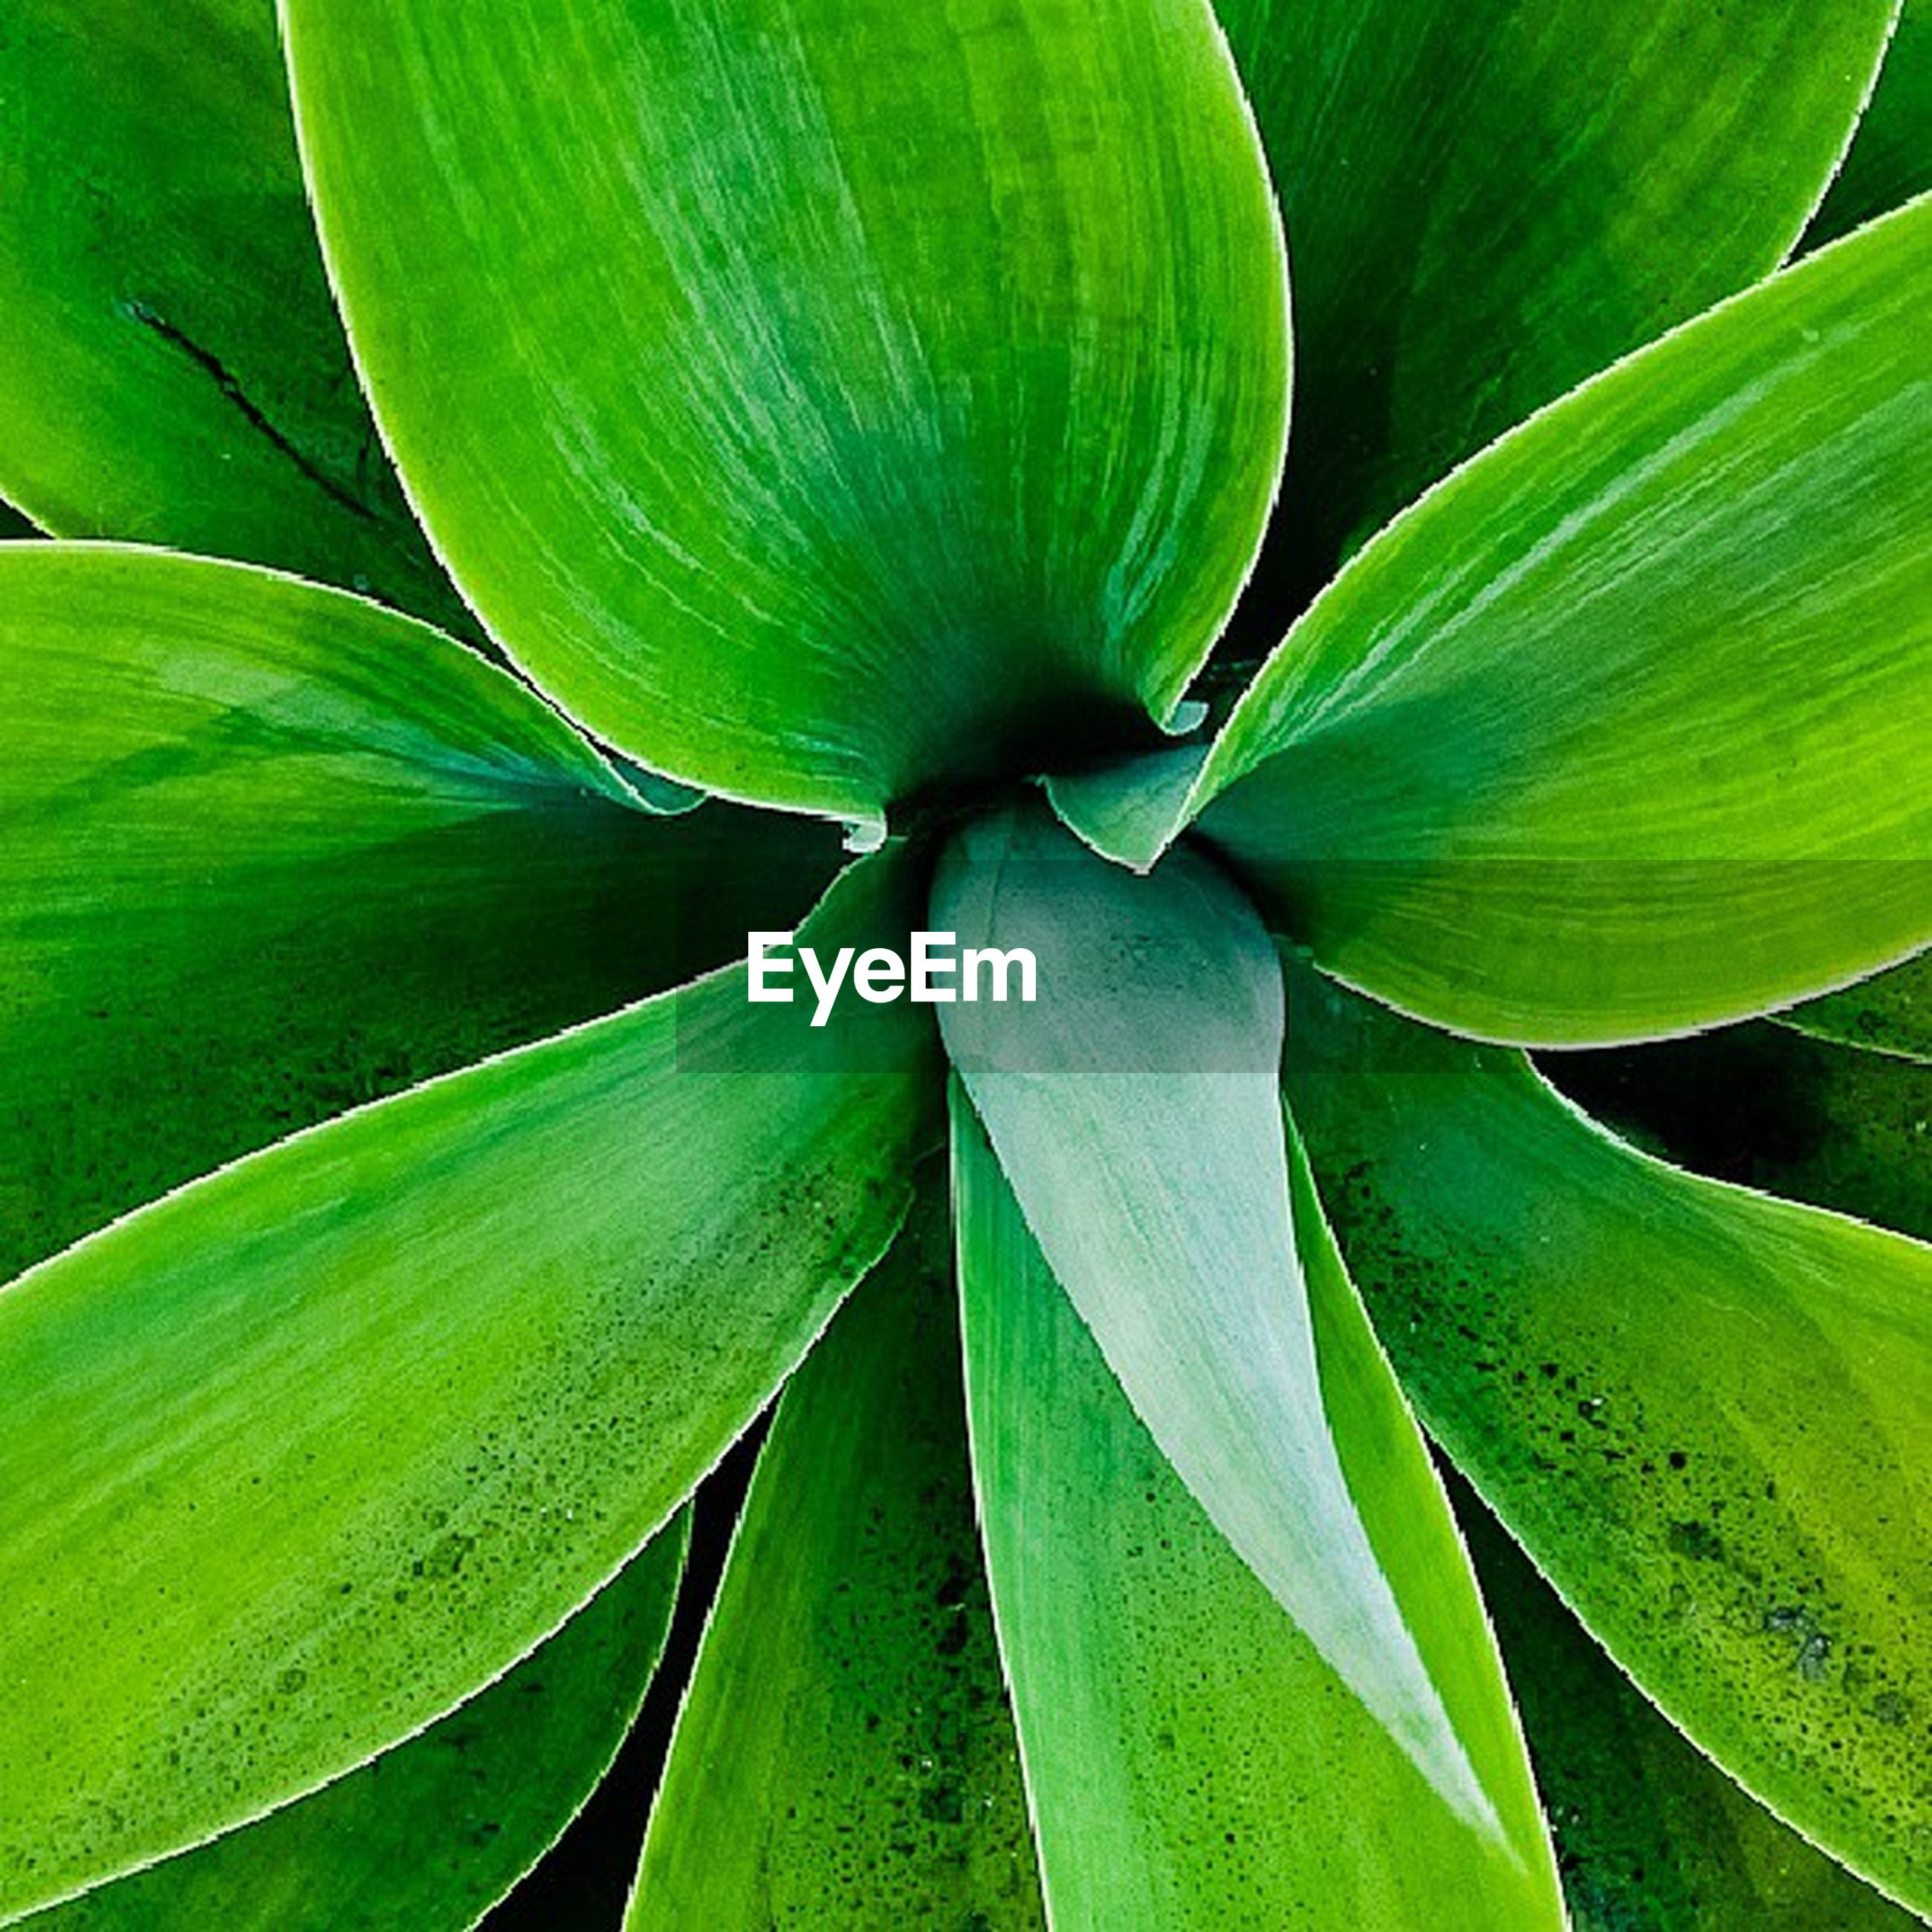 leaf, growth, freshness, green color, beauty in nature, flower, close-up, plant, nature, fragility, petal, flower head, backgrounds, leaf vein, full frame, natural pattern, green, single flower, no people, outdoors